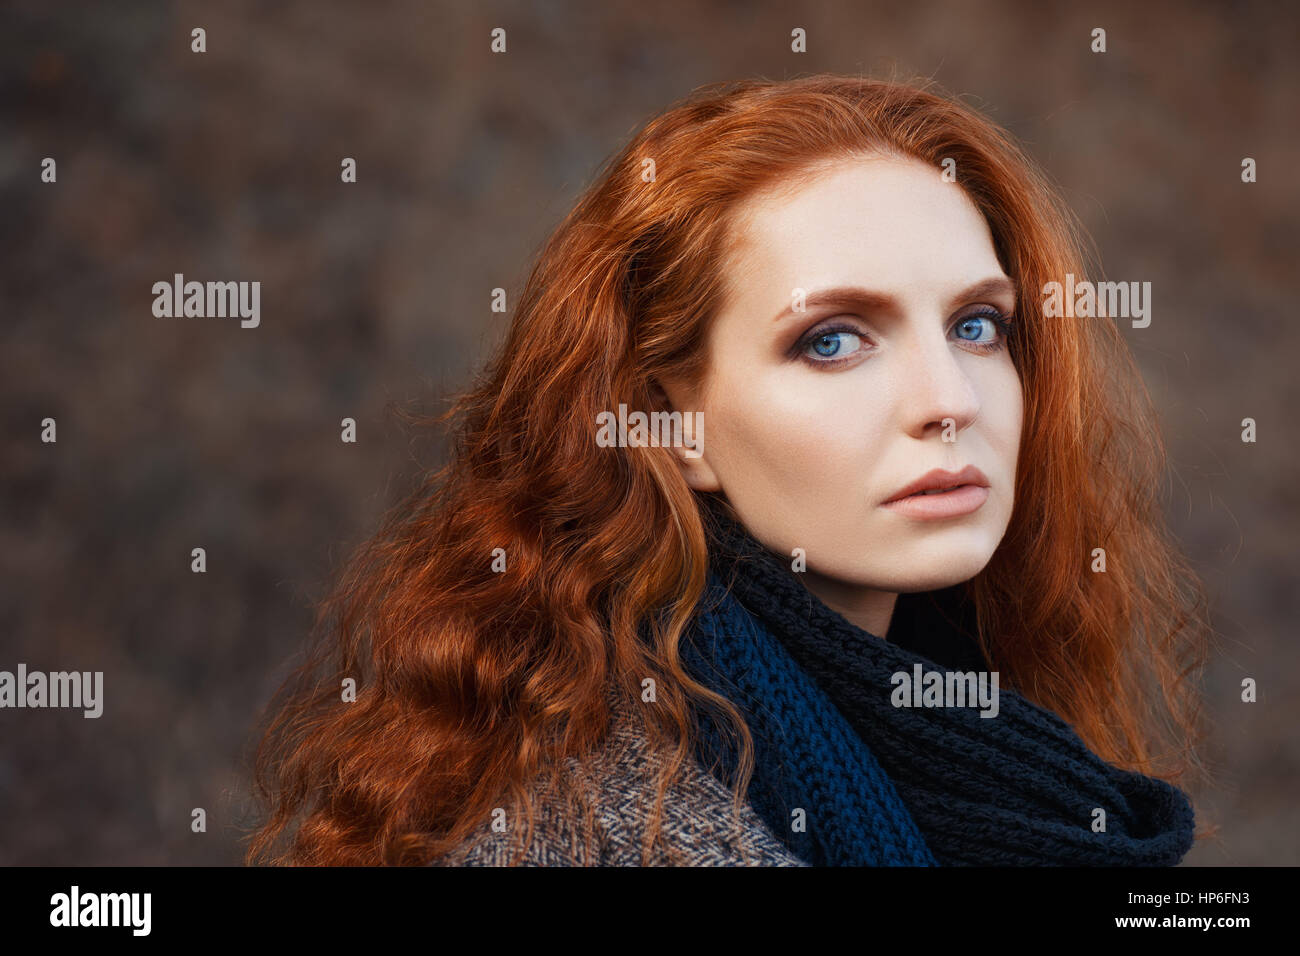 Close Up Portrait Of Beautiful Woman With Red Hair And Blue Eyes Stock Photo Alamy